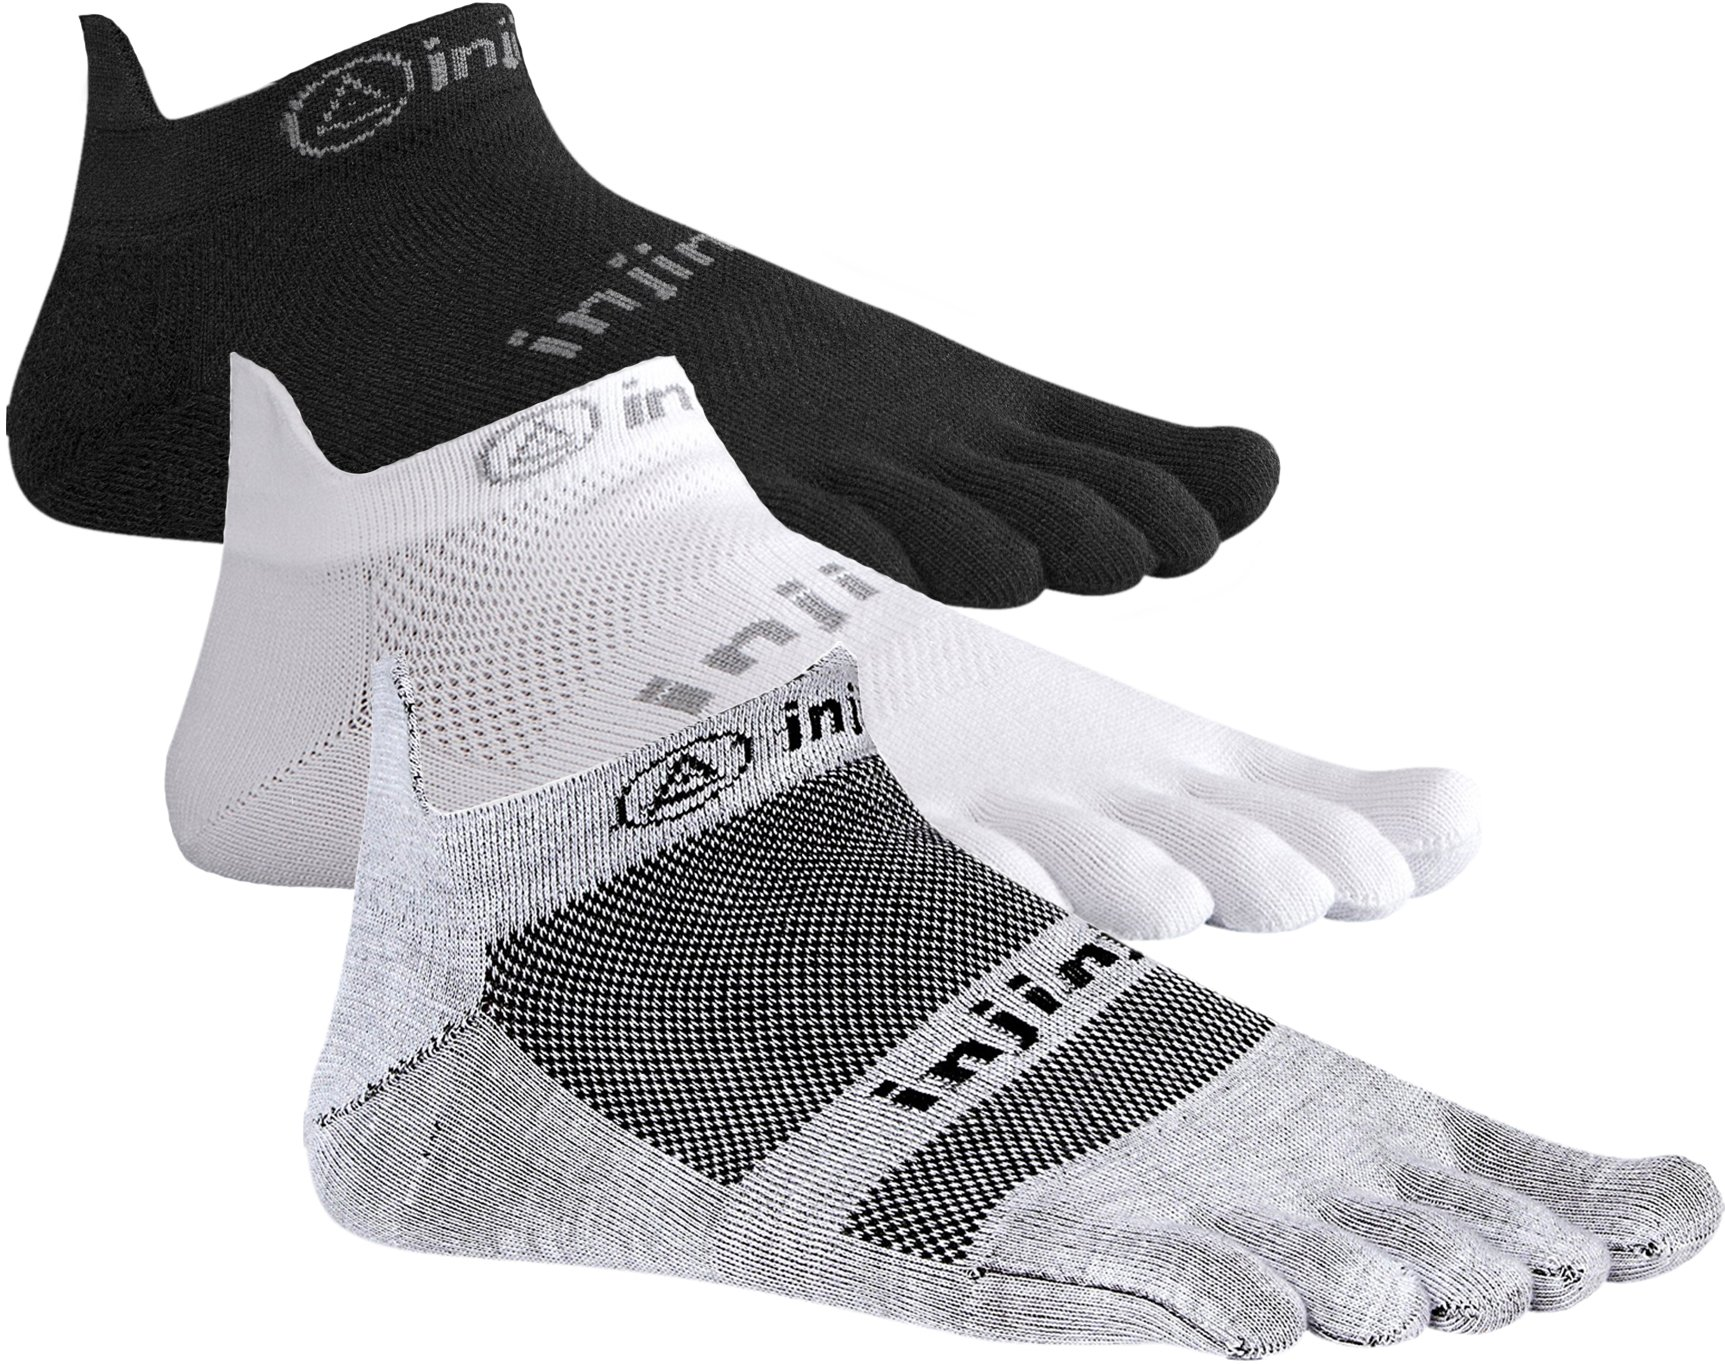 Injinji Run 2.0 Lightweight No Show Toe Socks 3 Pack (Black/Gray/White, Small)